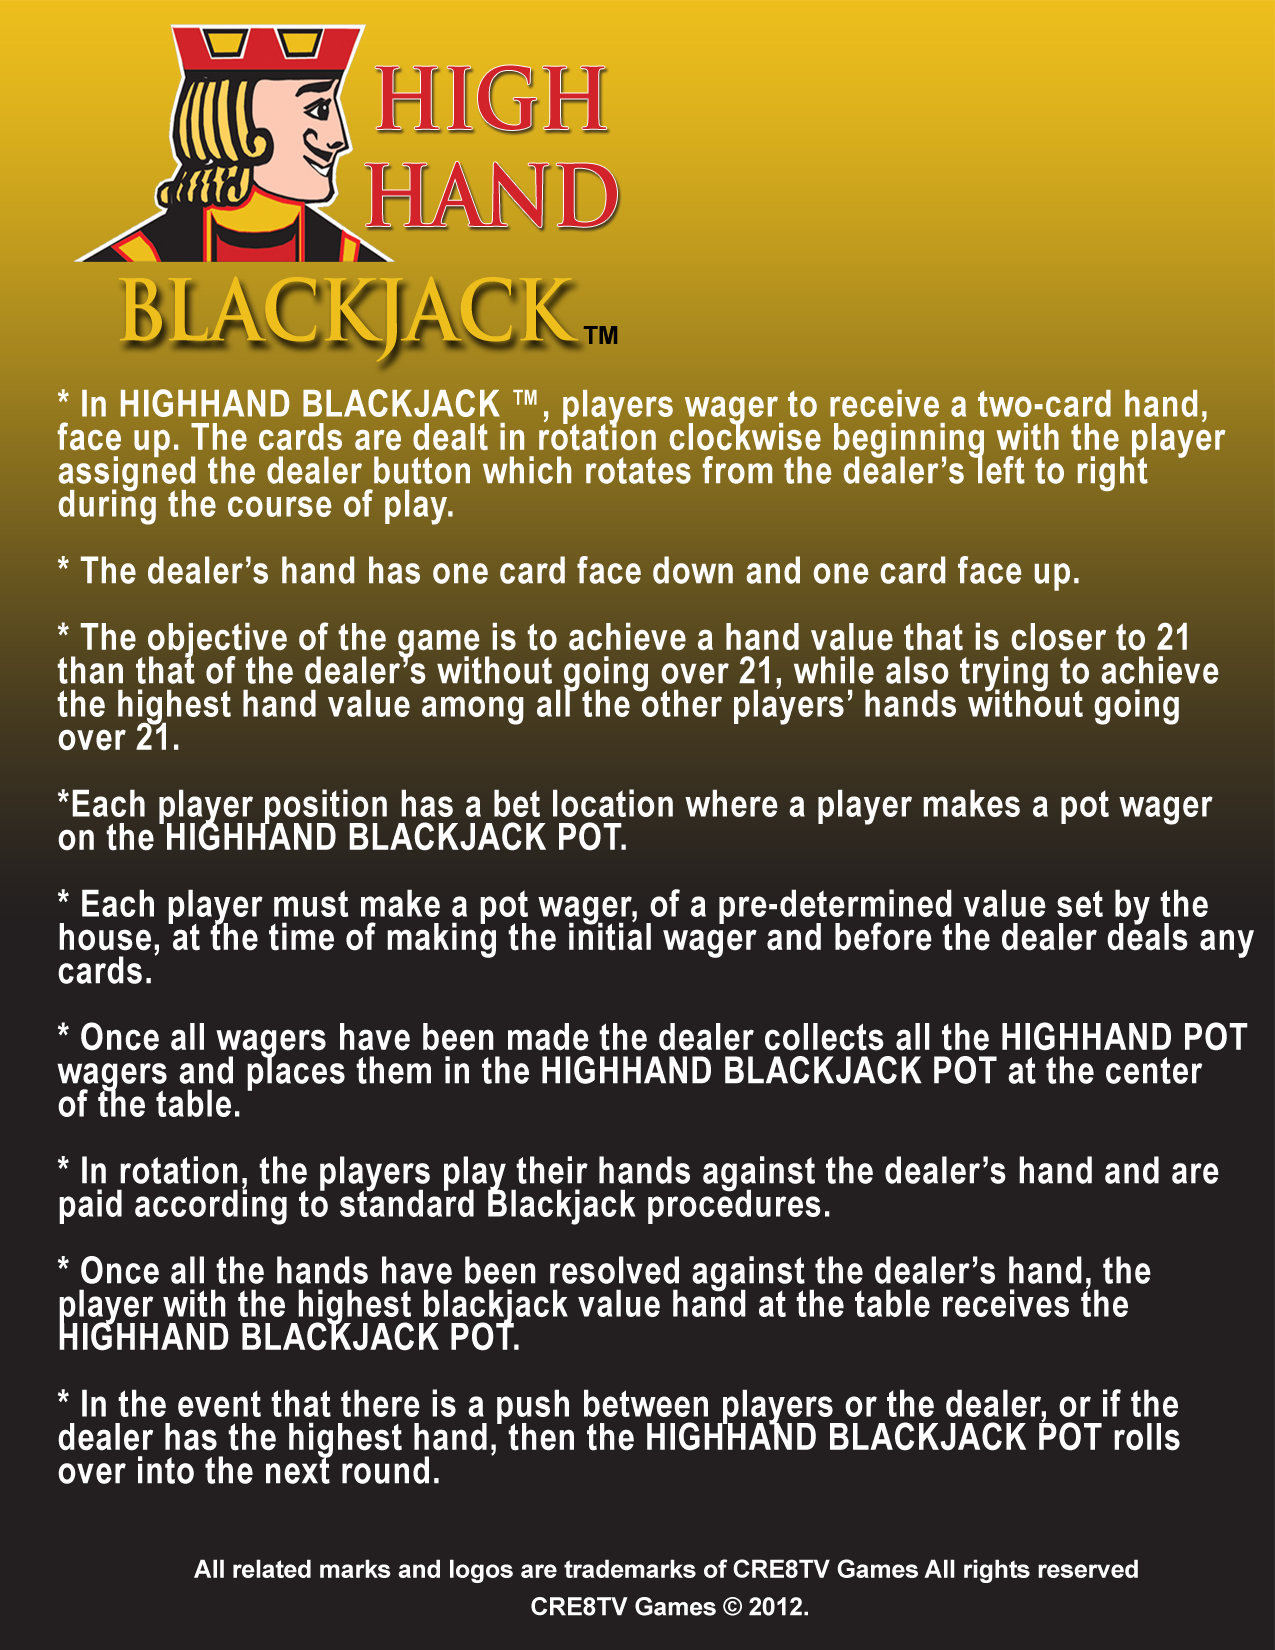 HighHand Blackjack Game Sheet